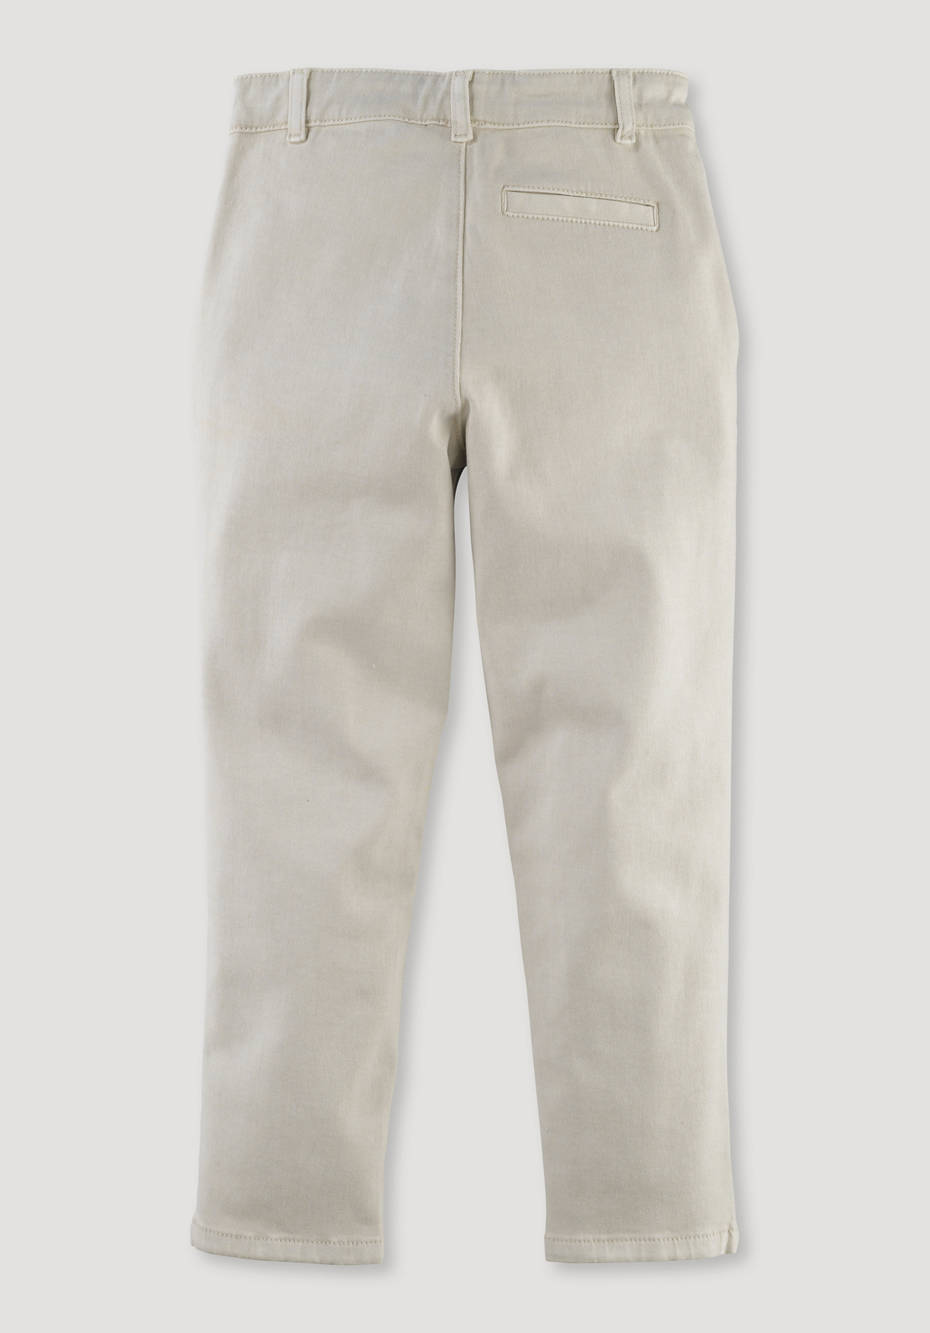 Mineral-dyed chinos made from pure organic cotton